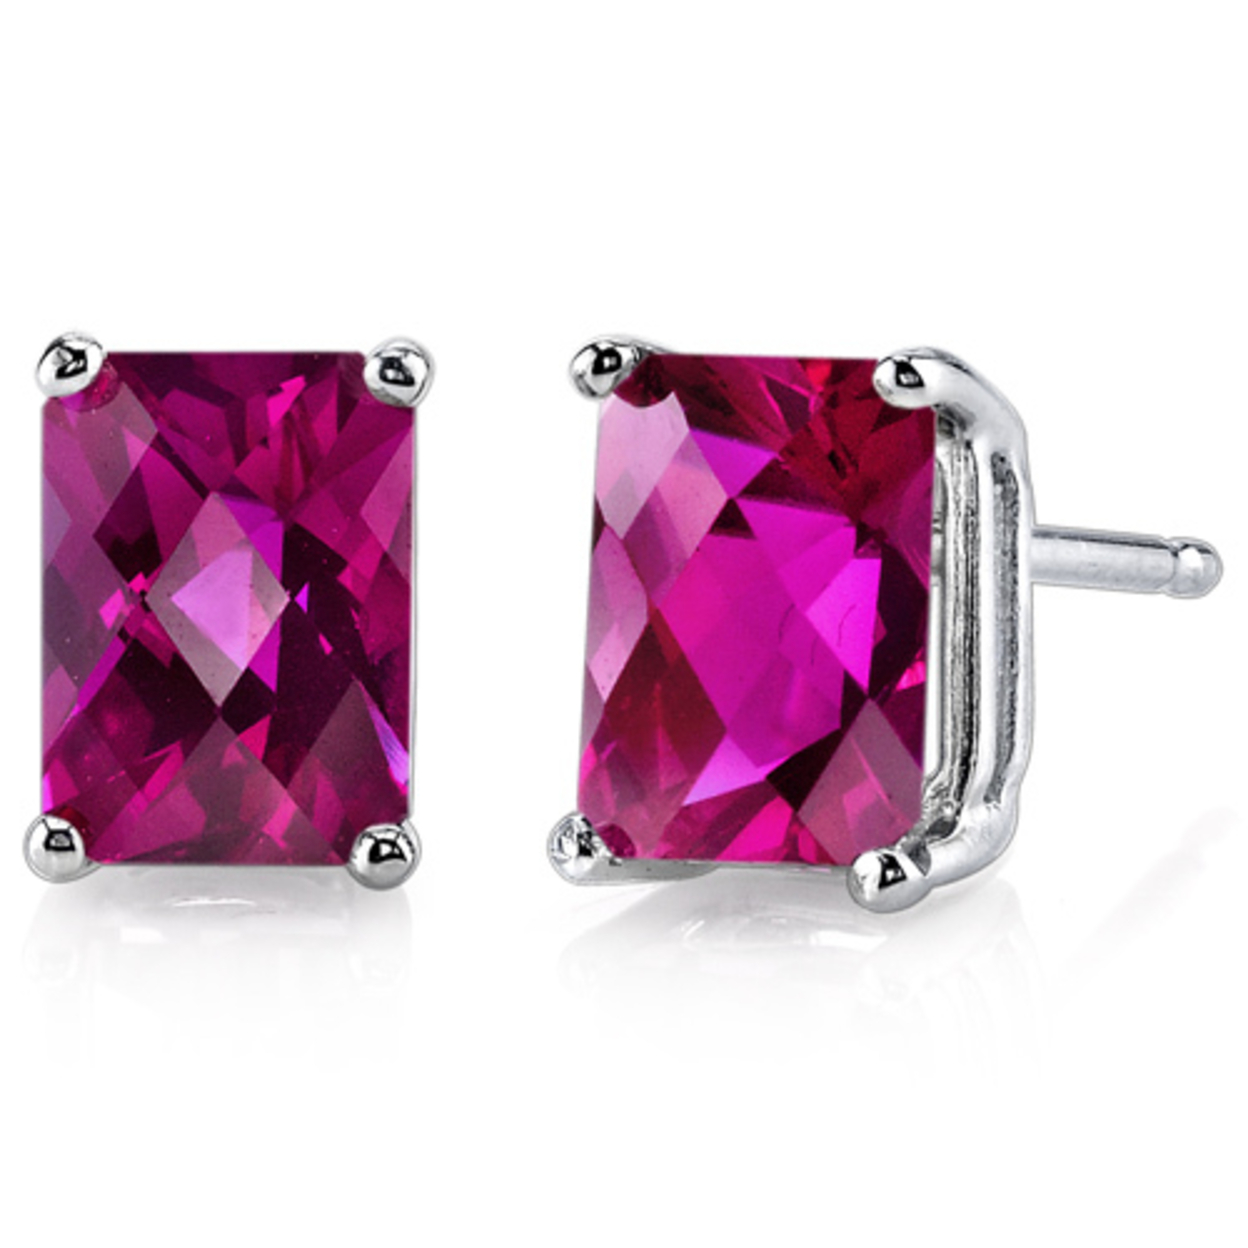 14 Karat White Gold Radiant Cut 2.50 Carats Created Ruby Stud Earrings